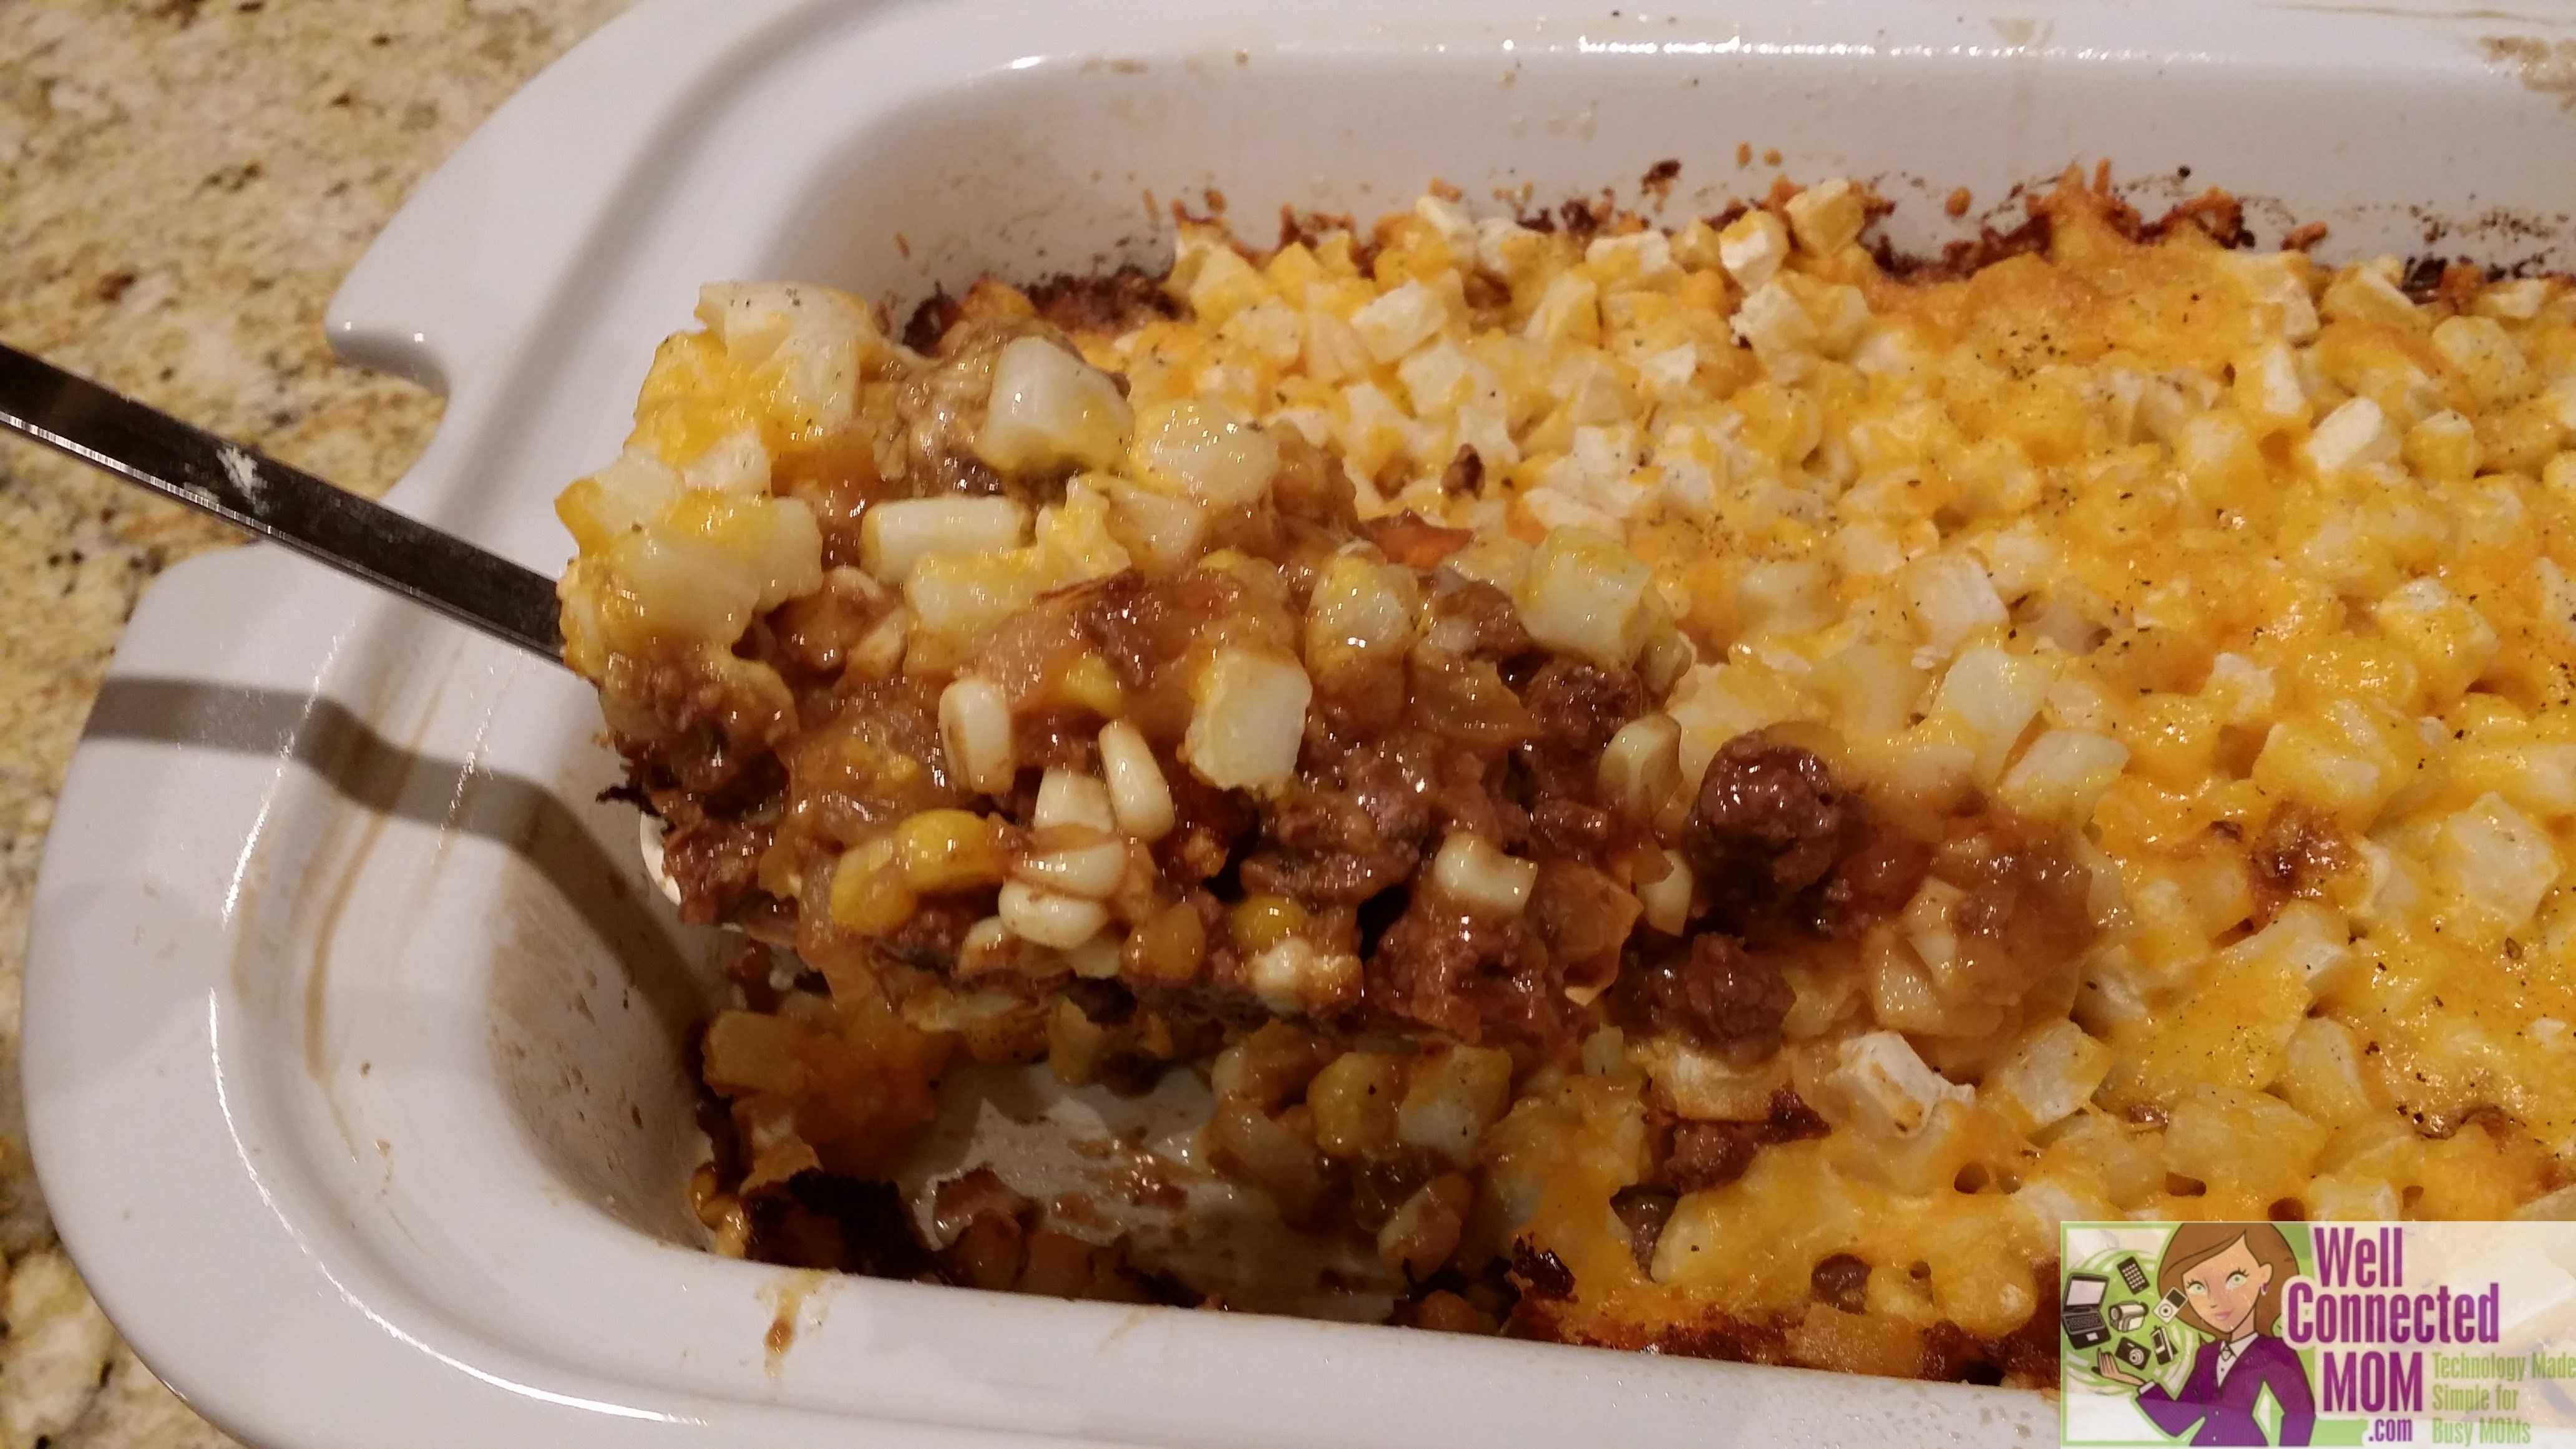 New Crock Pot Casserole Crock Is Turning Heads The Well